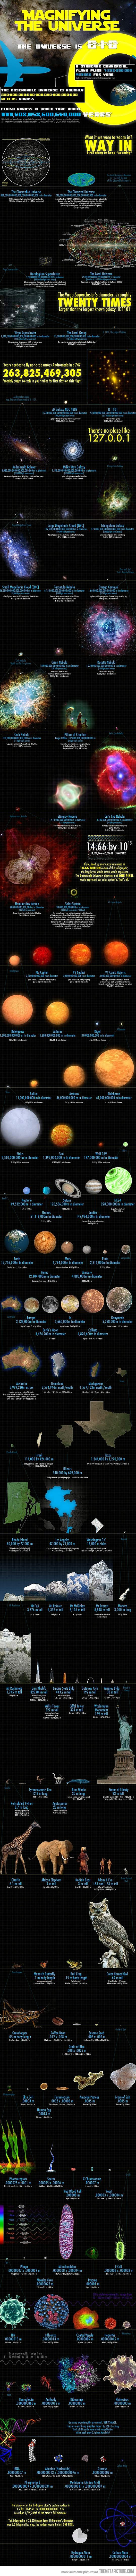 """Check out the short film """"The Cosmic Voyage"""" as well; it's basically Morgan Freeman narrating this infographic:)"""